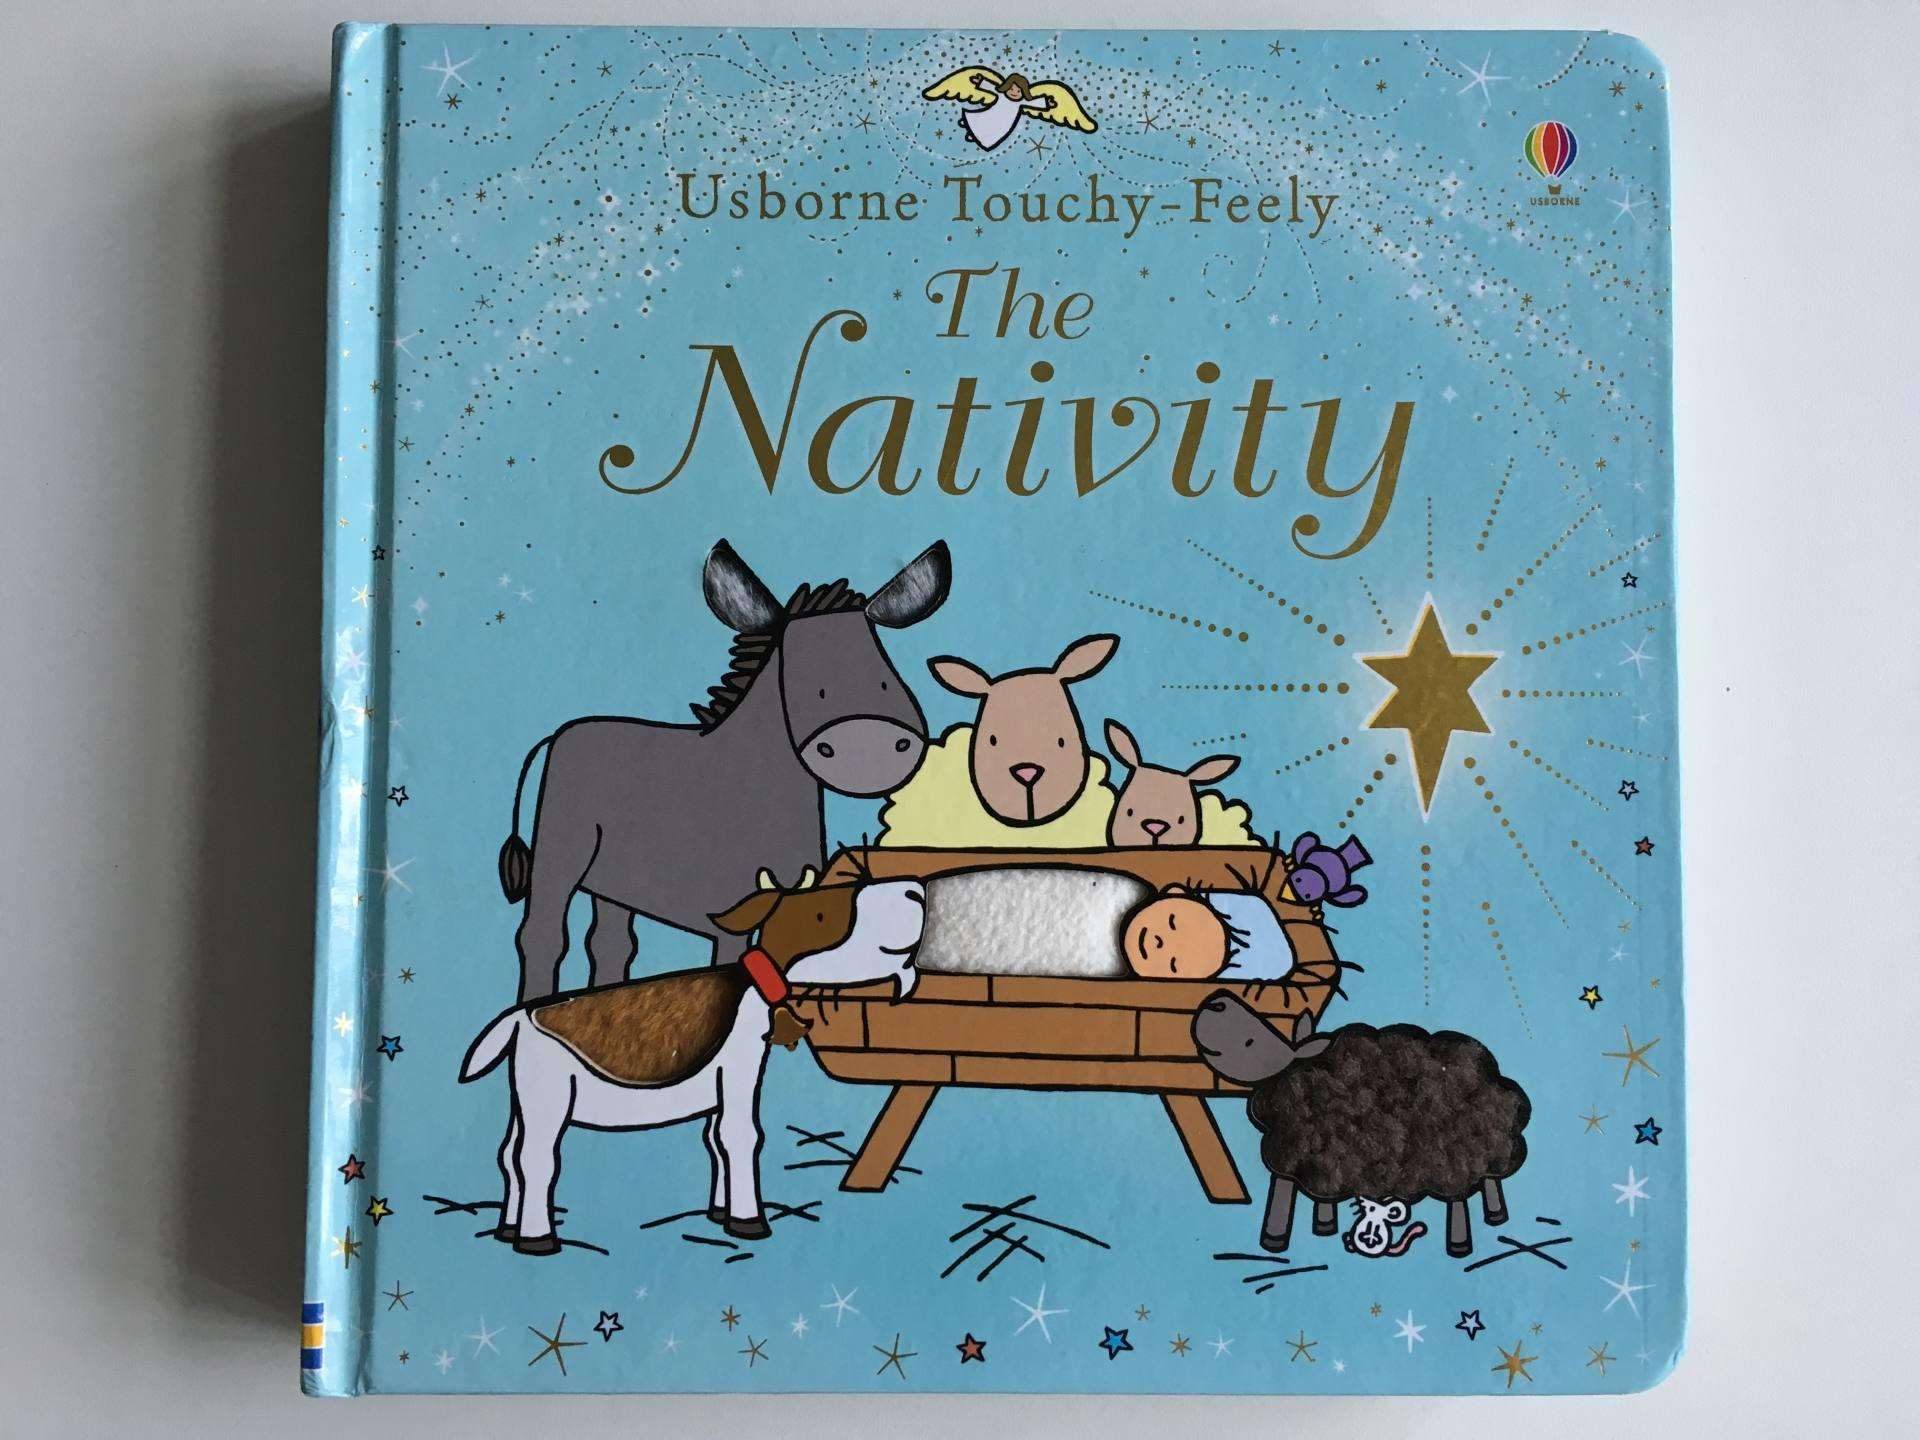 Christmas Book Advent, IMG 7769%, lifestyle%